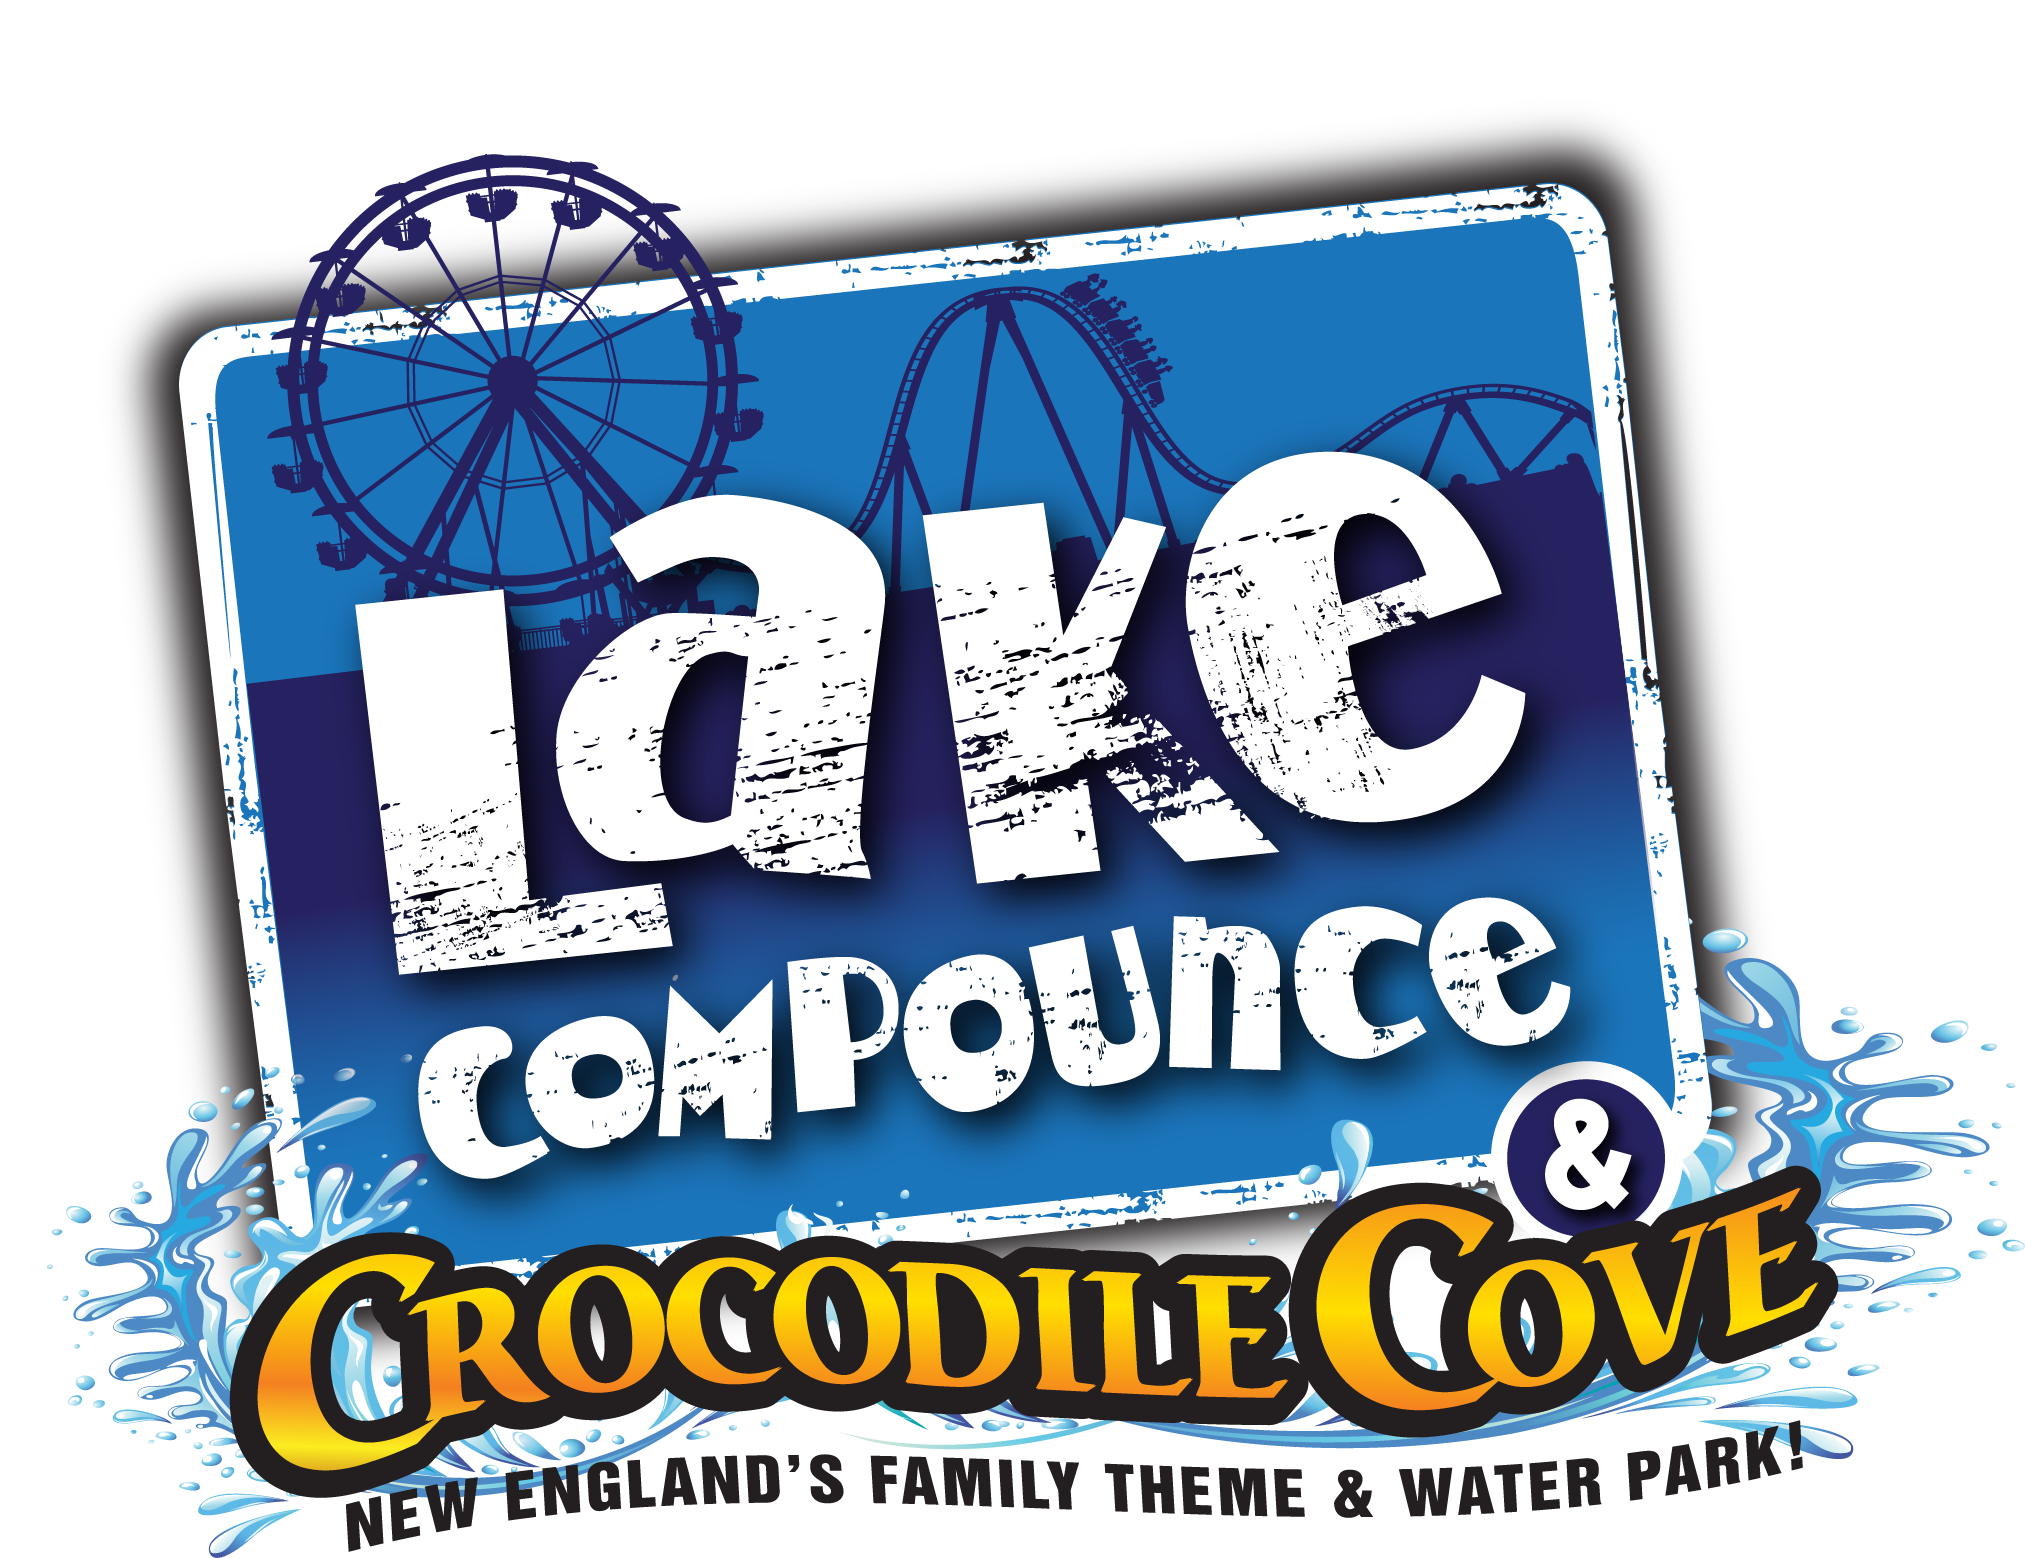 Lake Compounce & Crocodile Cove, New England's Family Theme & Water Park